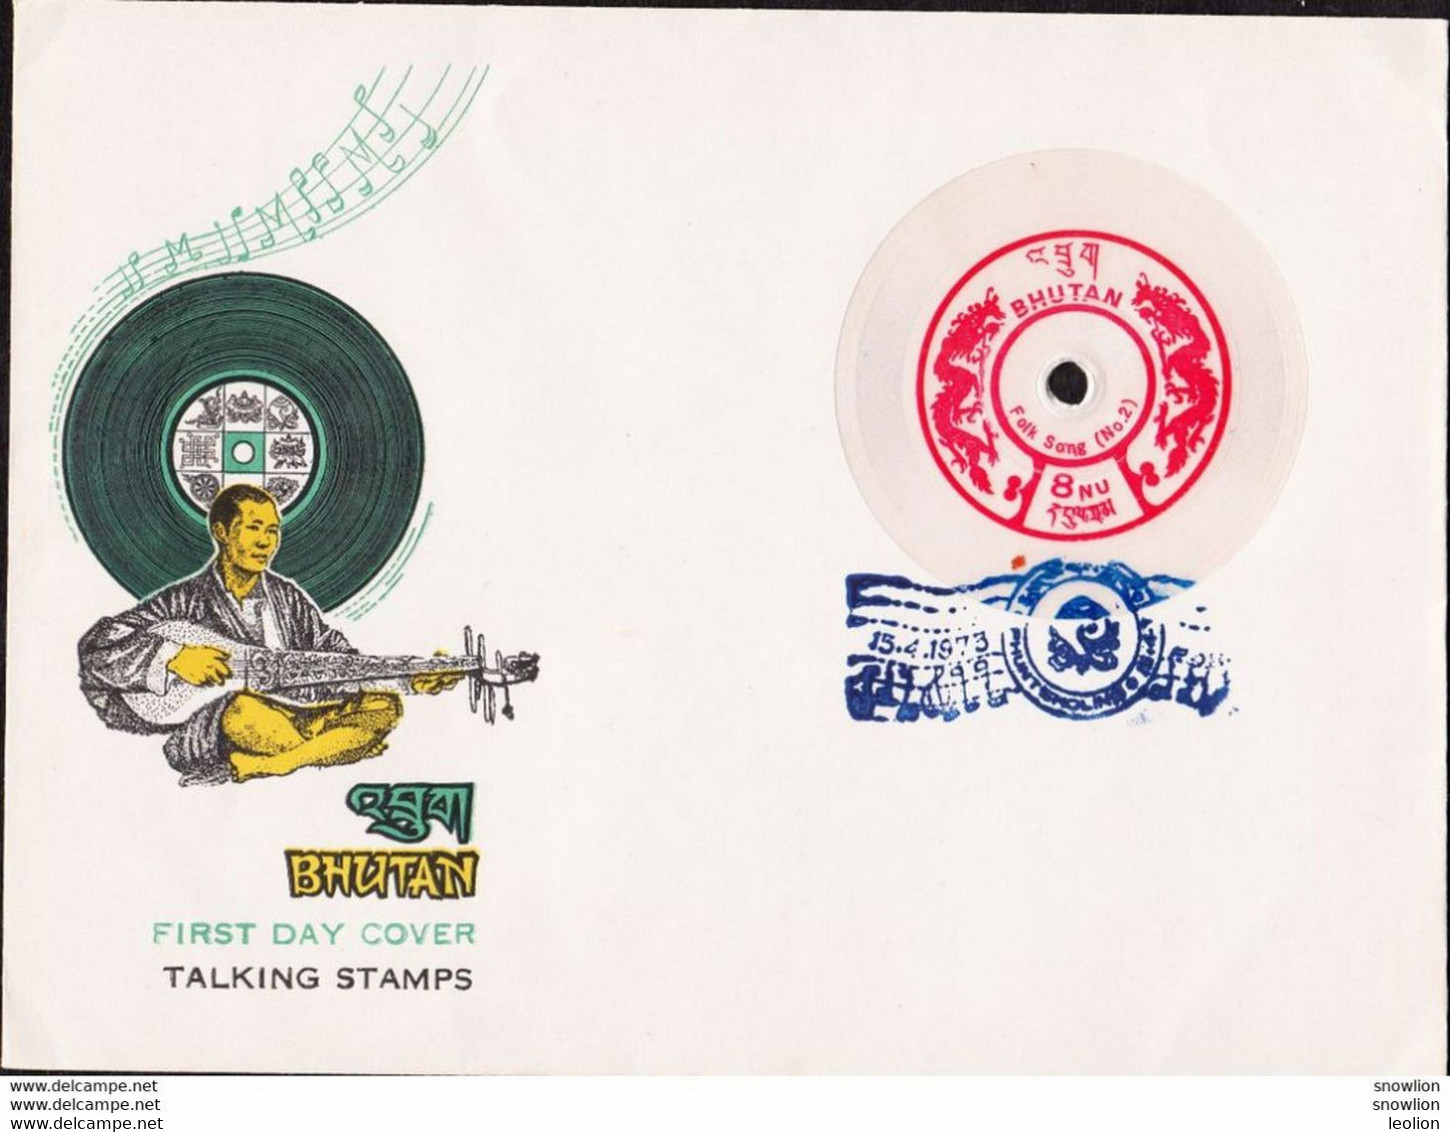 Bhutan FDC 1973 Talking Stamps 8 Ngultrum Gramophone Record First Day Of Issue Cover BHOUTAN - Bhutan